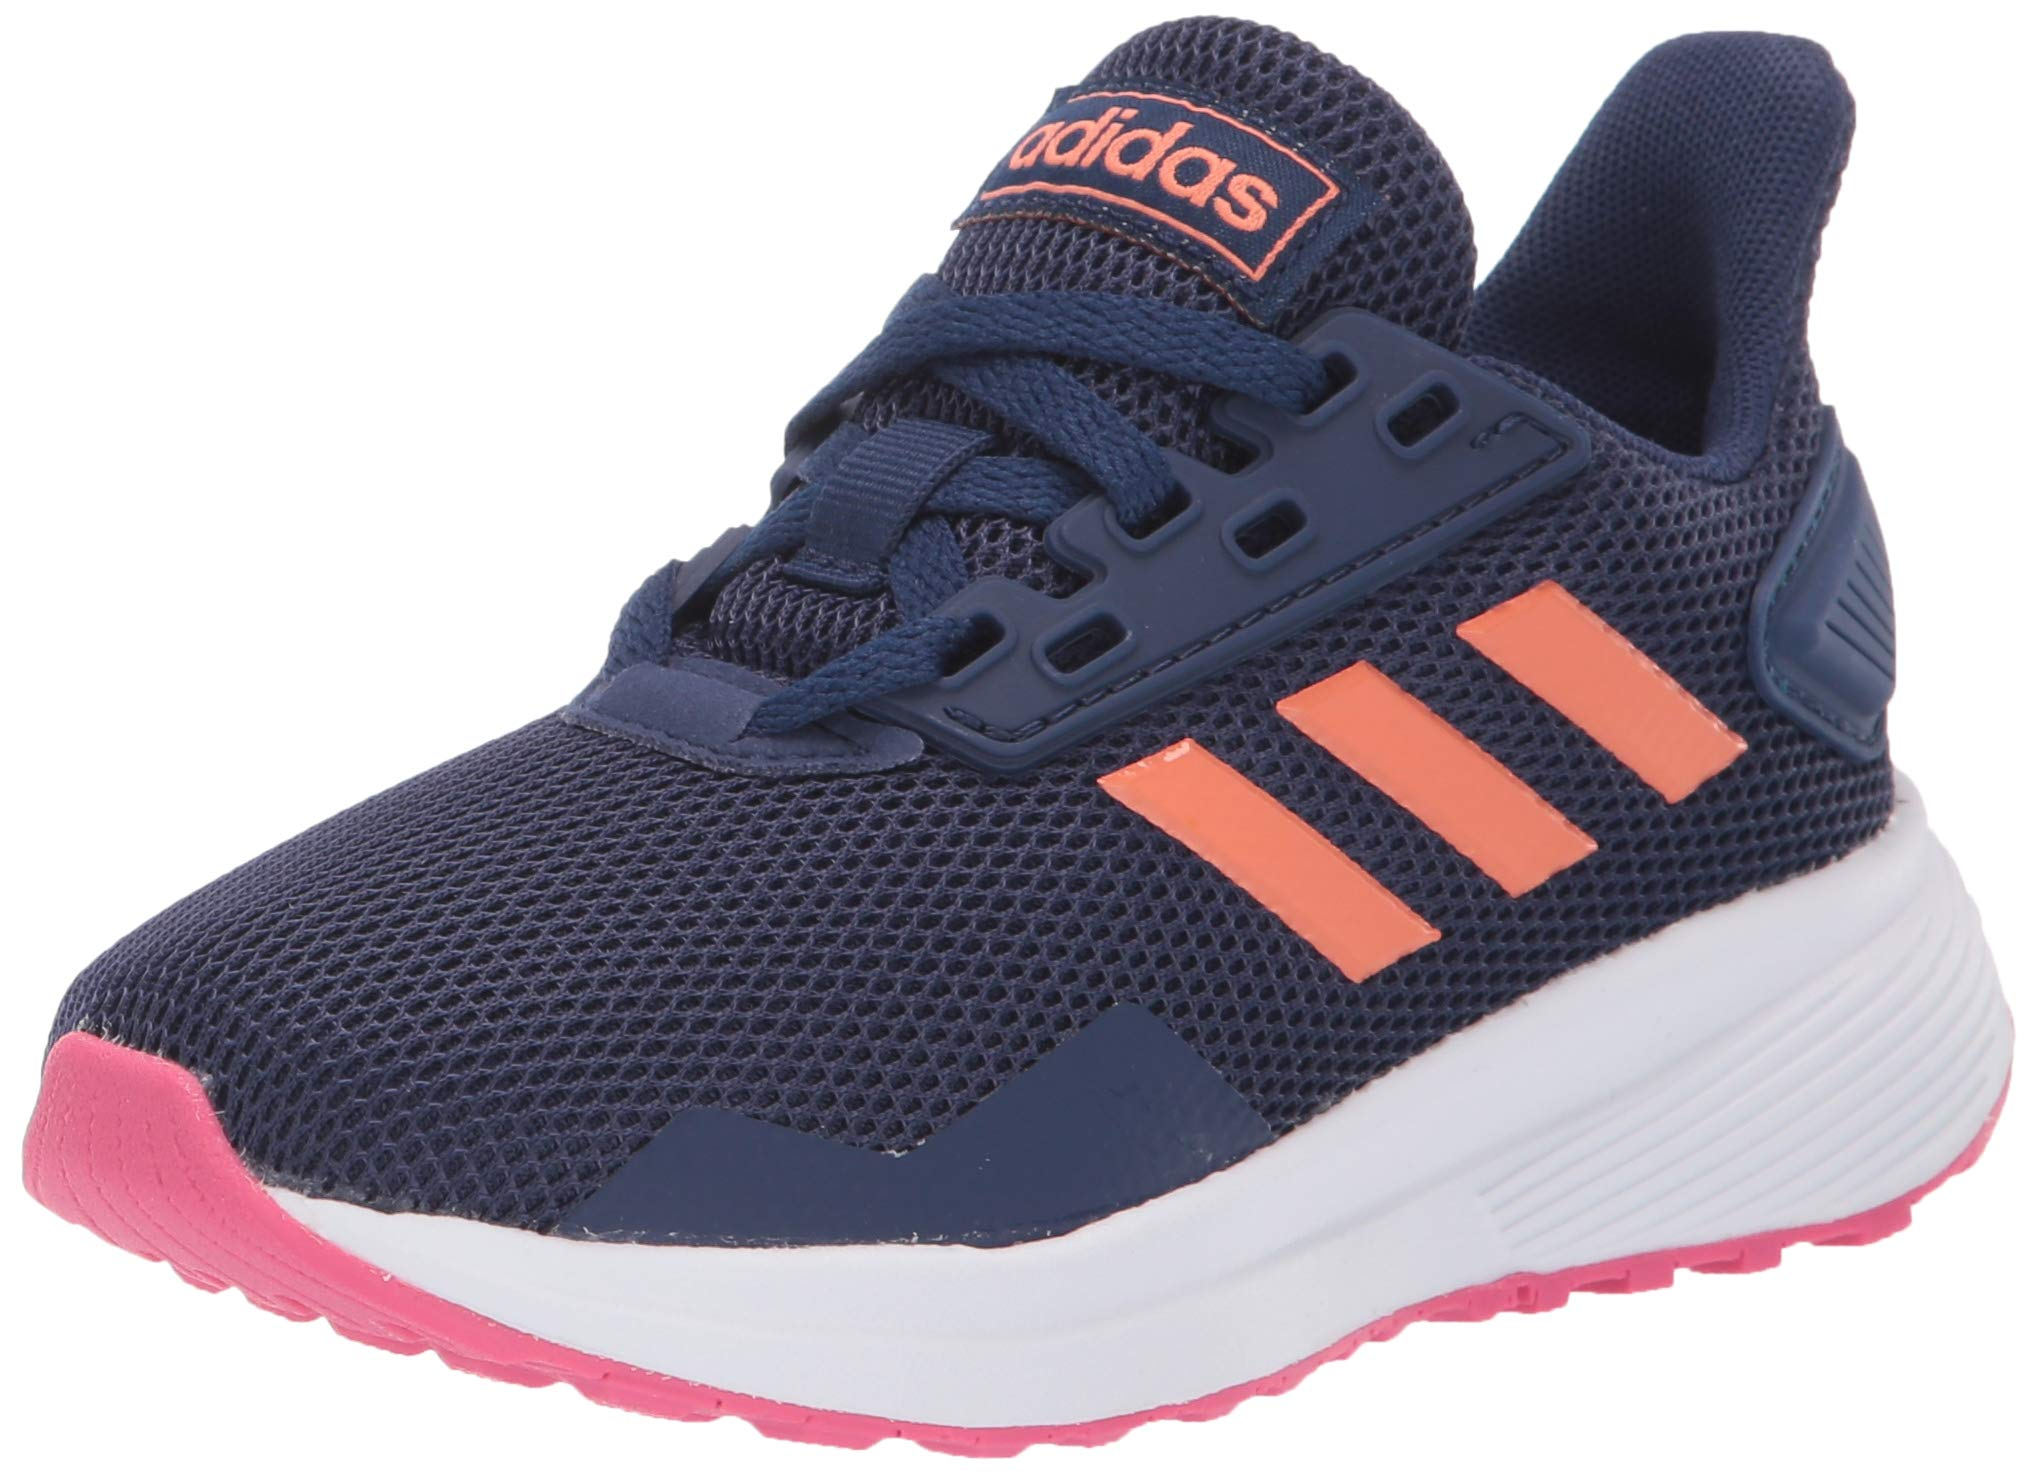 adidas Unisex Duramo 9 Running Shoe, Dark Blue/Semi Coral/Real Pink, 11K M US Little Kid by adidas